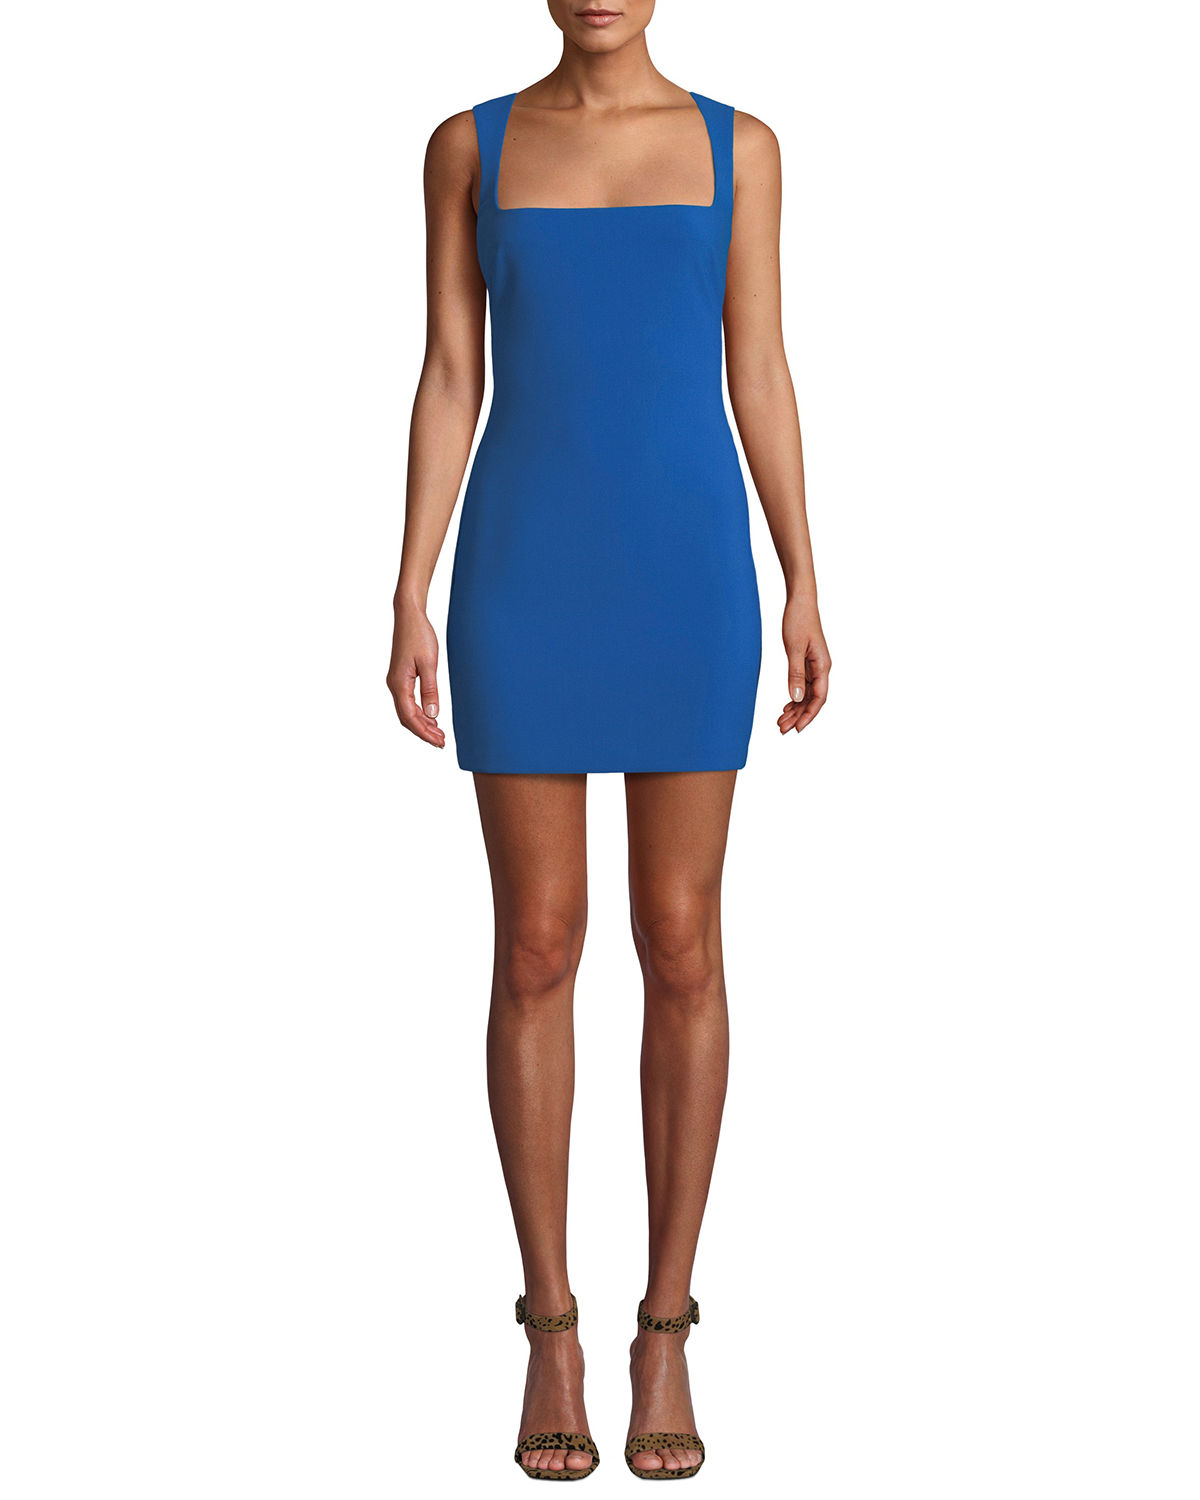 Josephine Sleeveless Square-Neck Mini Dress